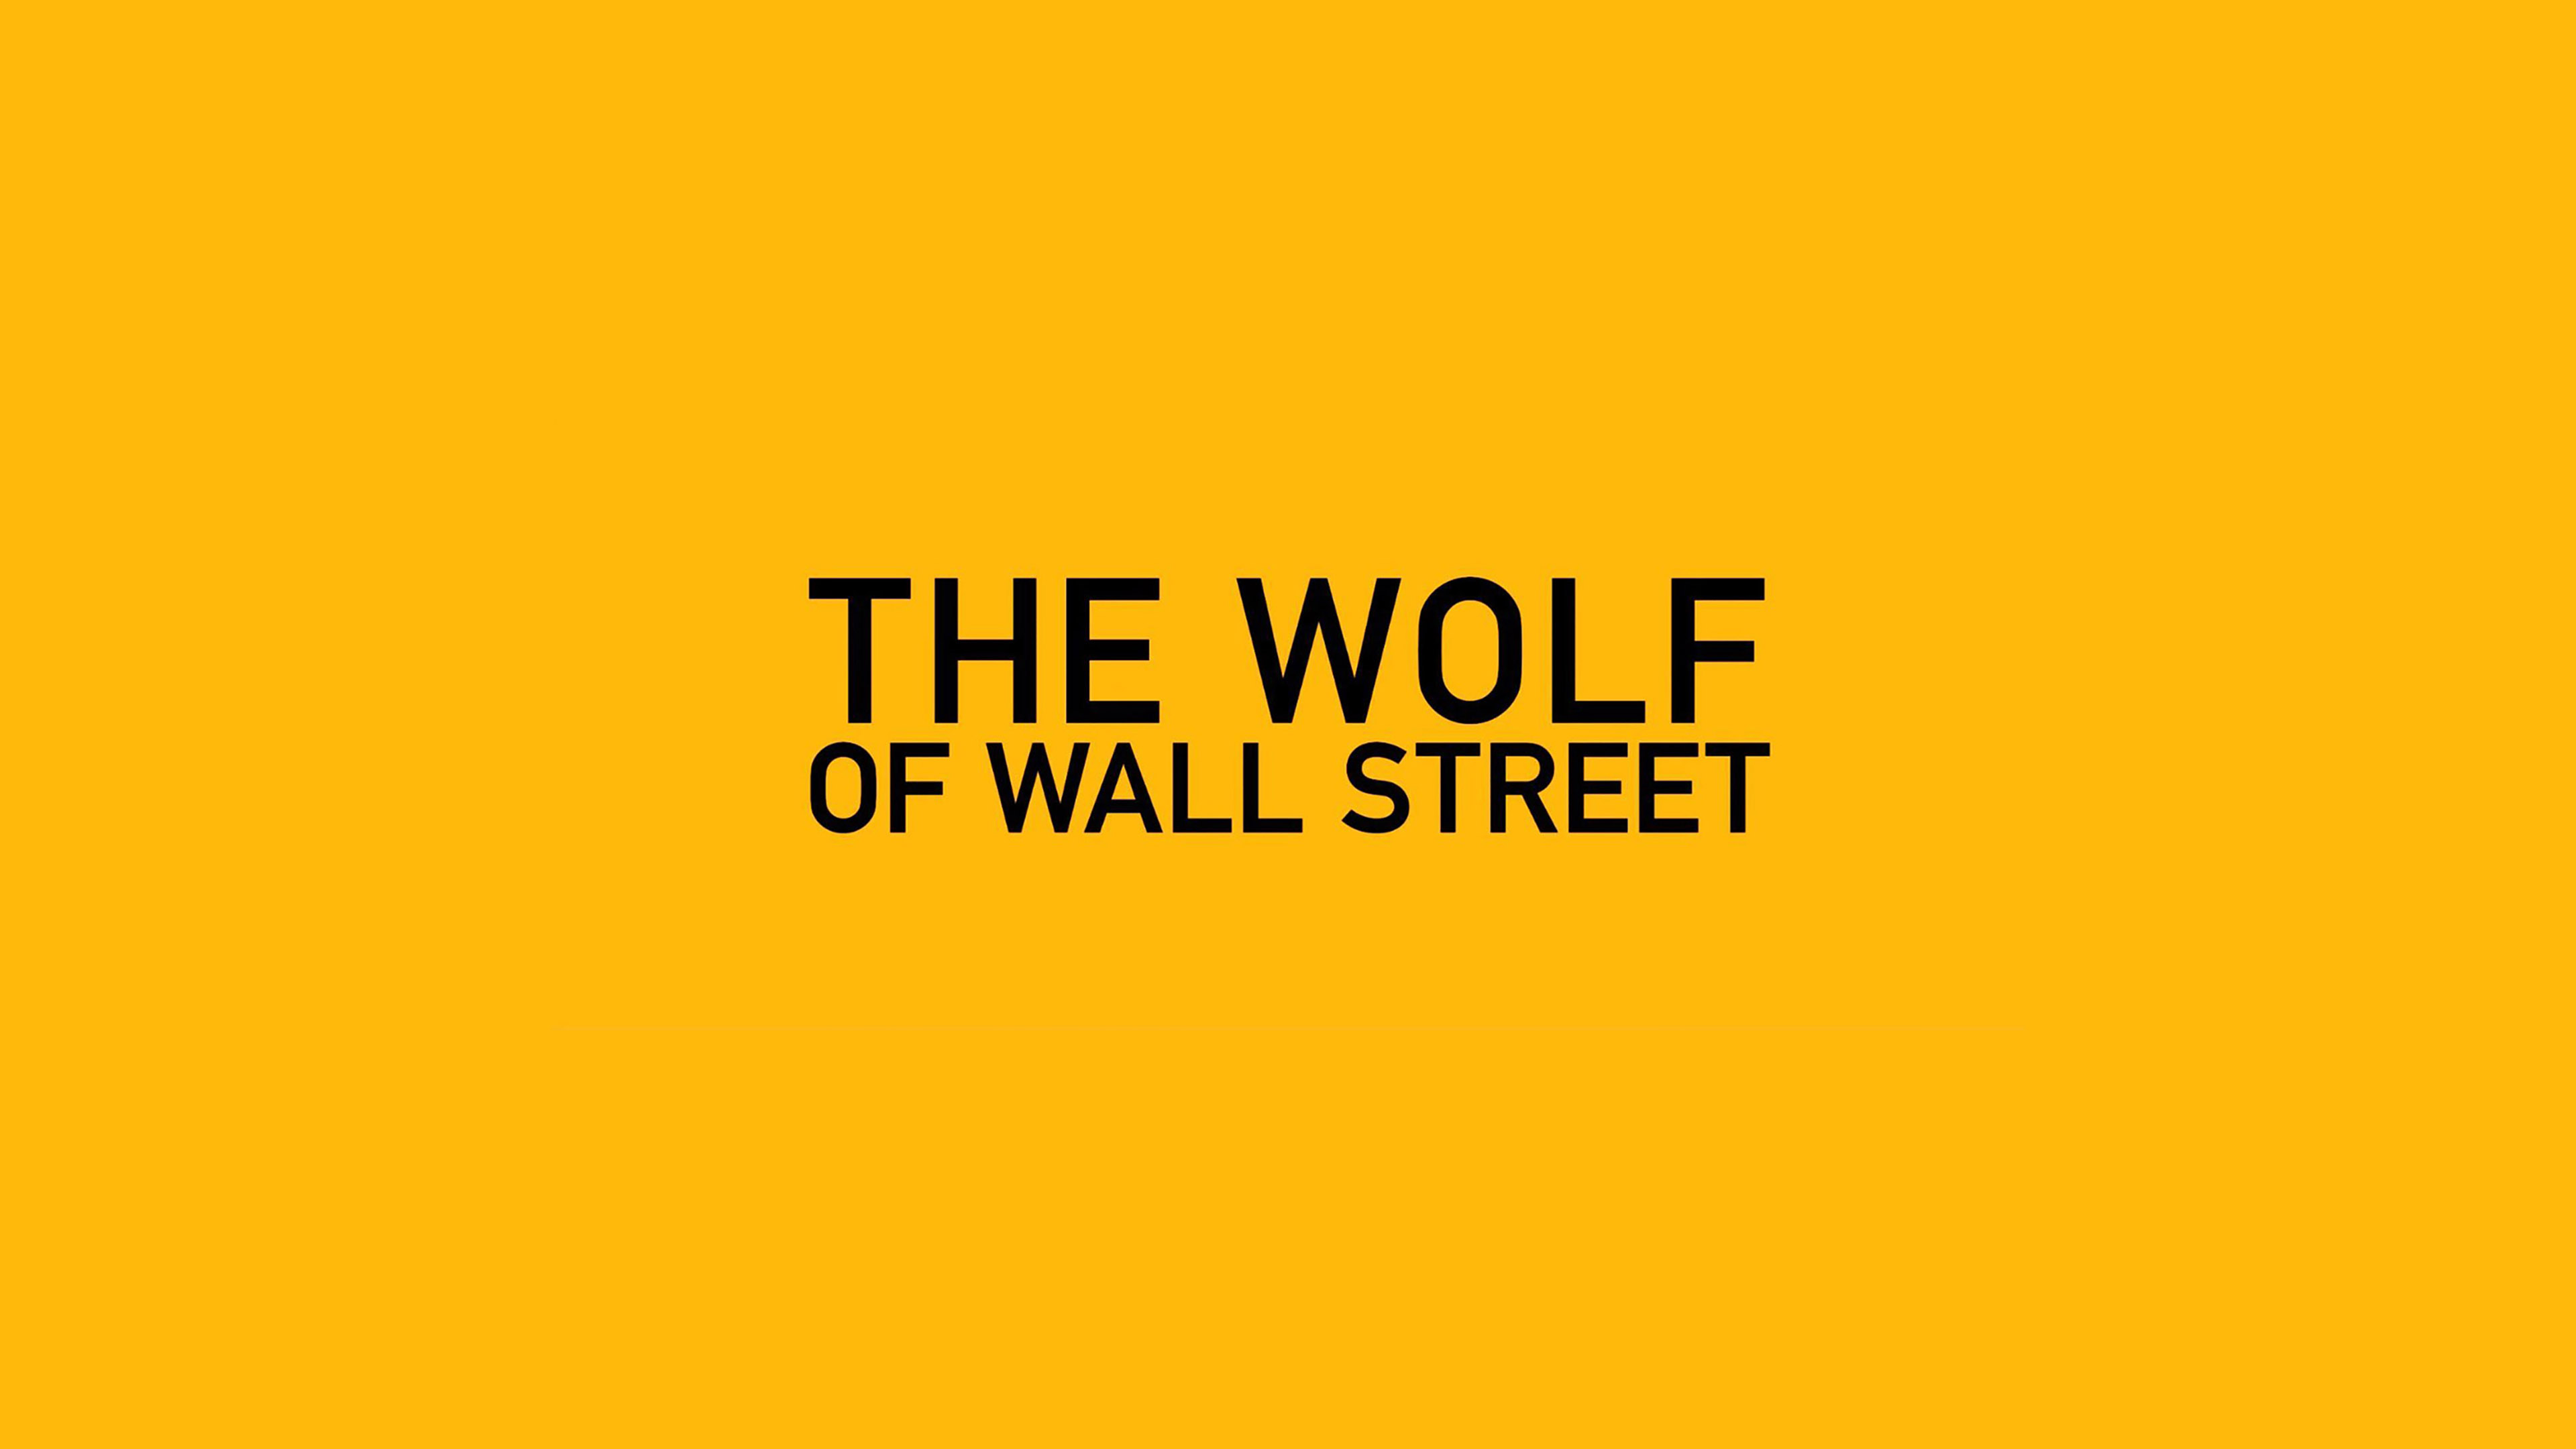 Wolf Of Wall Street Wallpaper Iphone Ab26 Wallpaper The Wolf Of Wallstreet Yellow Film Logo